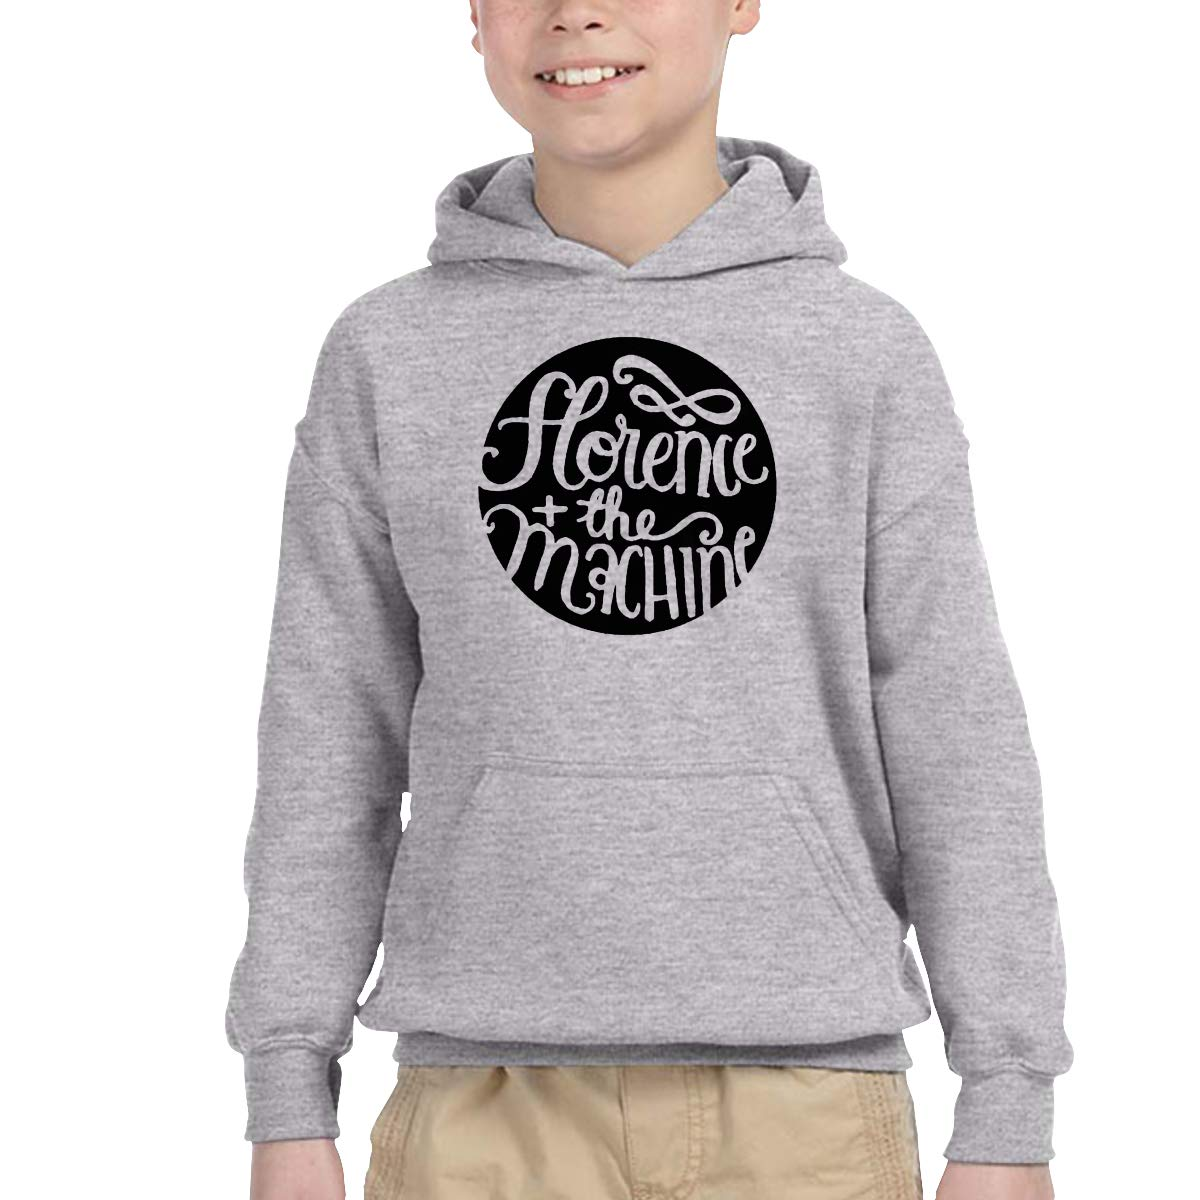 2-6 Year Old Childrens Hooded Pocket Sweater Florence Machine Logo Original Retro Literary Design Gray